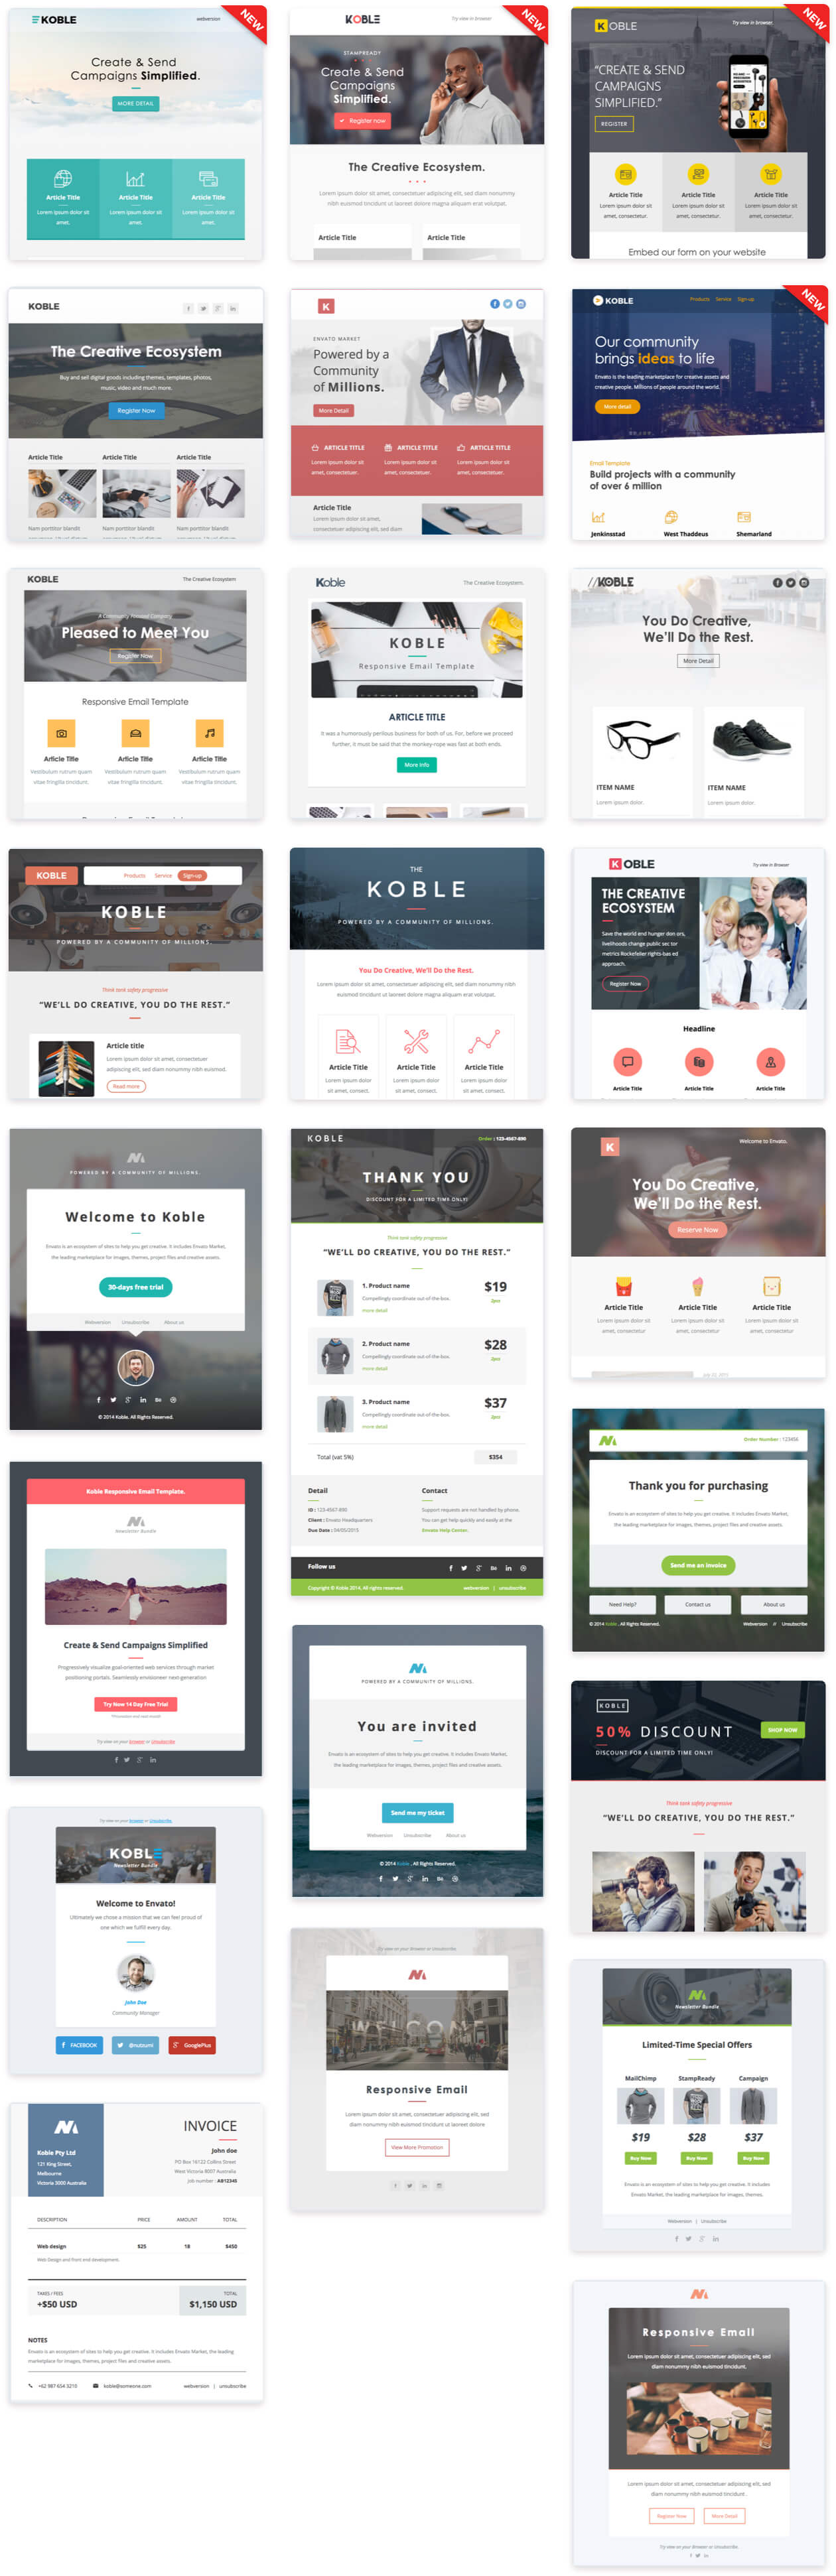 thumb - Koble | Business Email Set